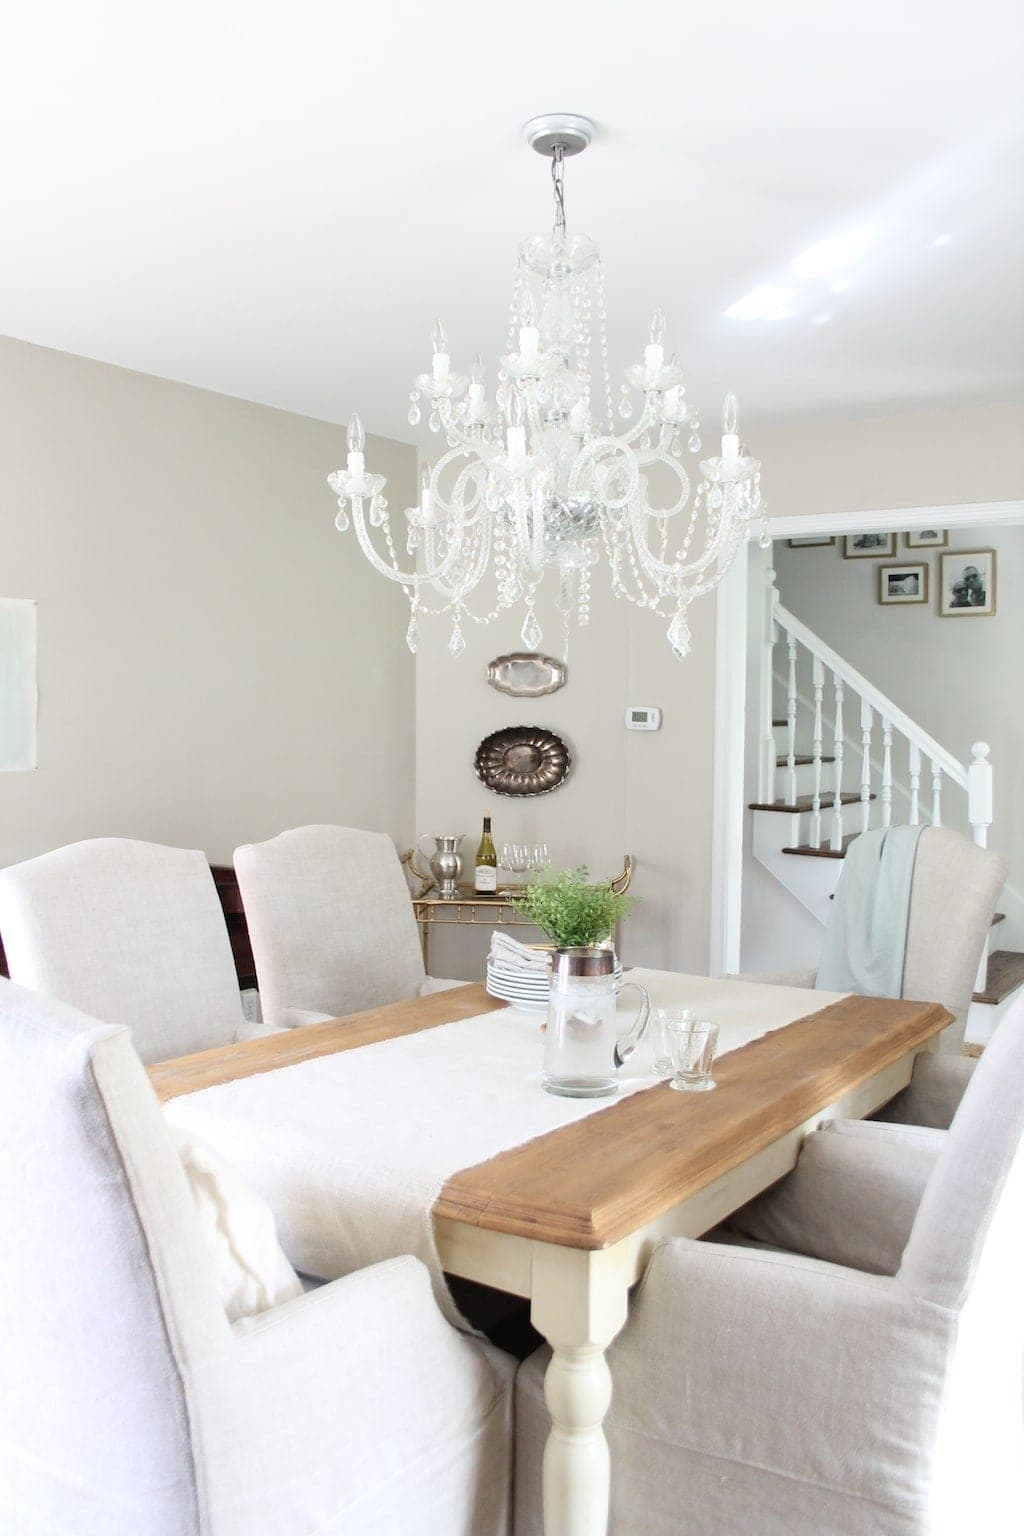 See why this room works - simple tips to make a space great!